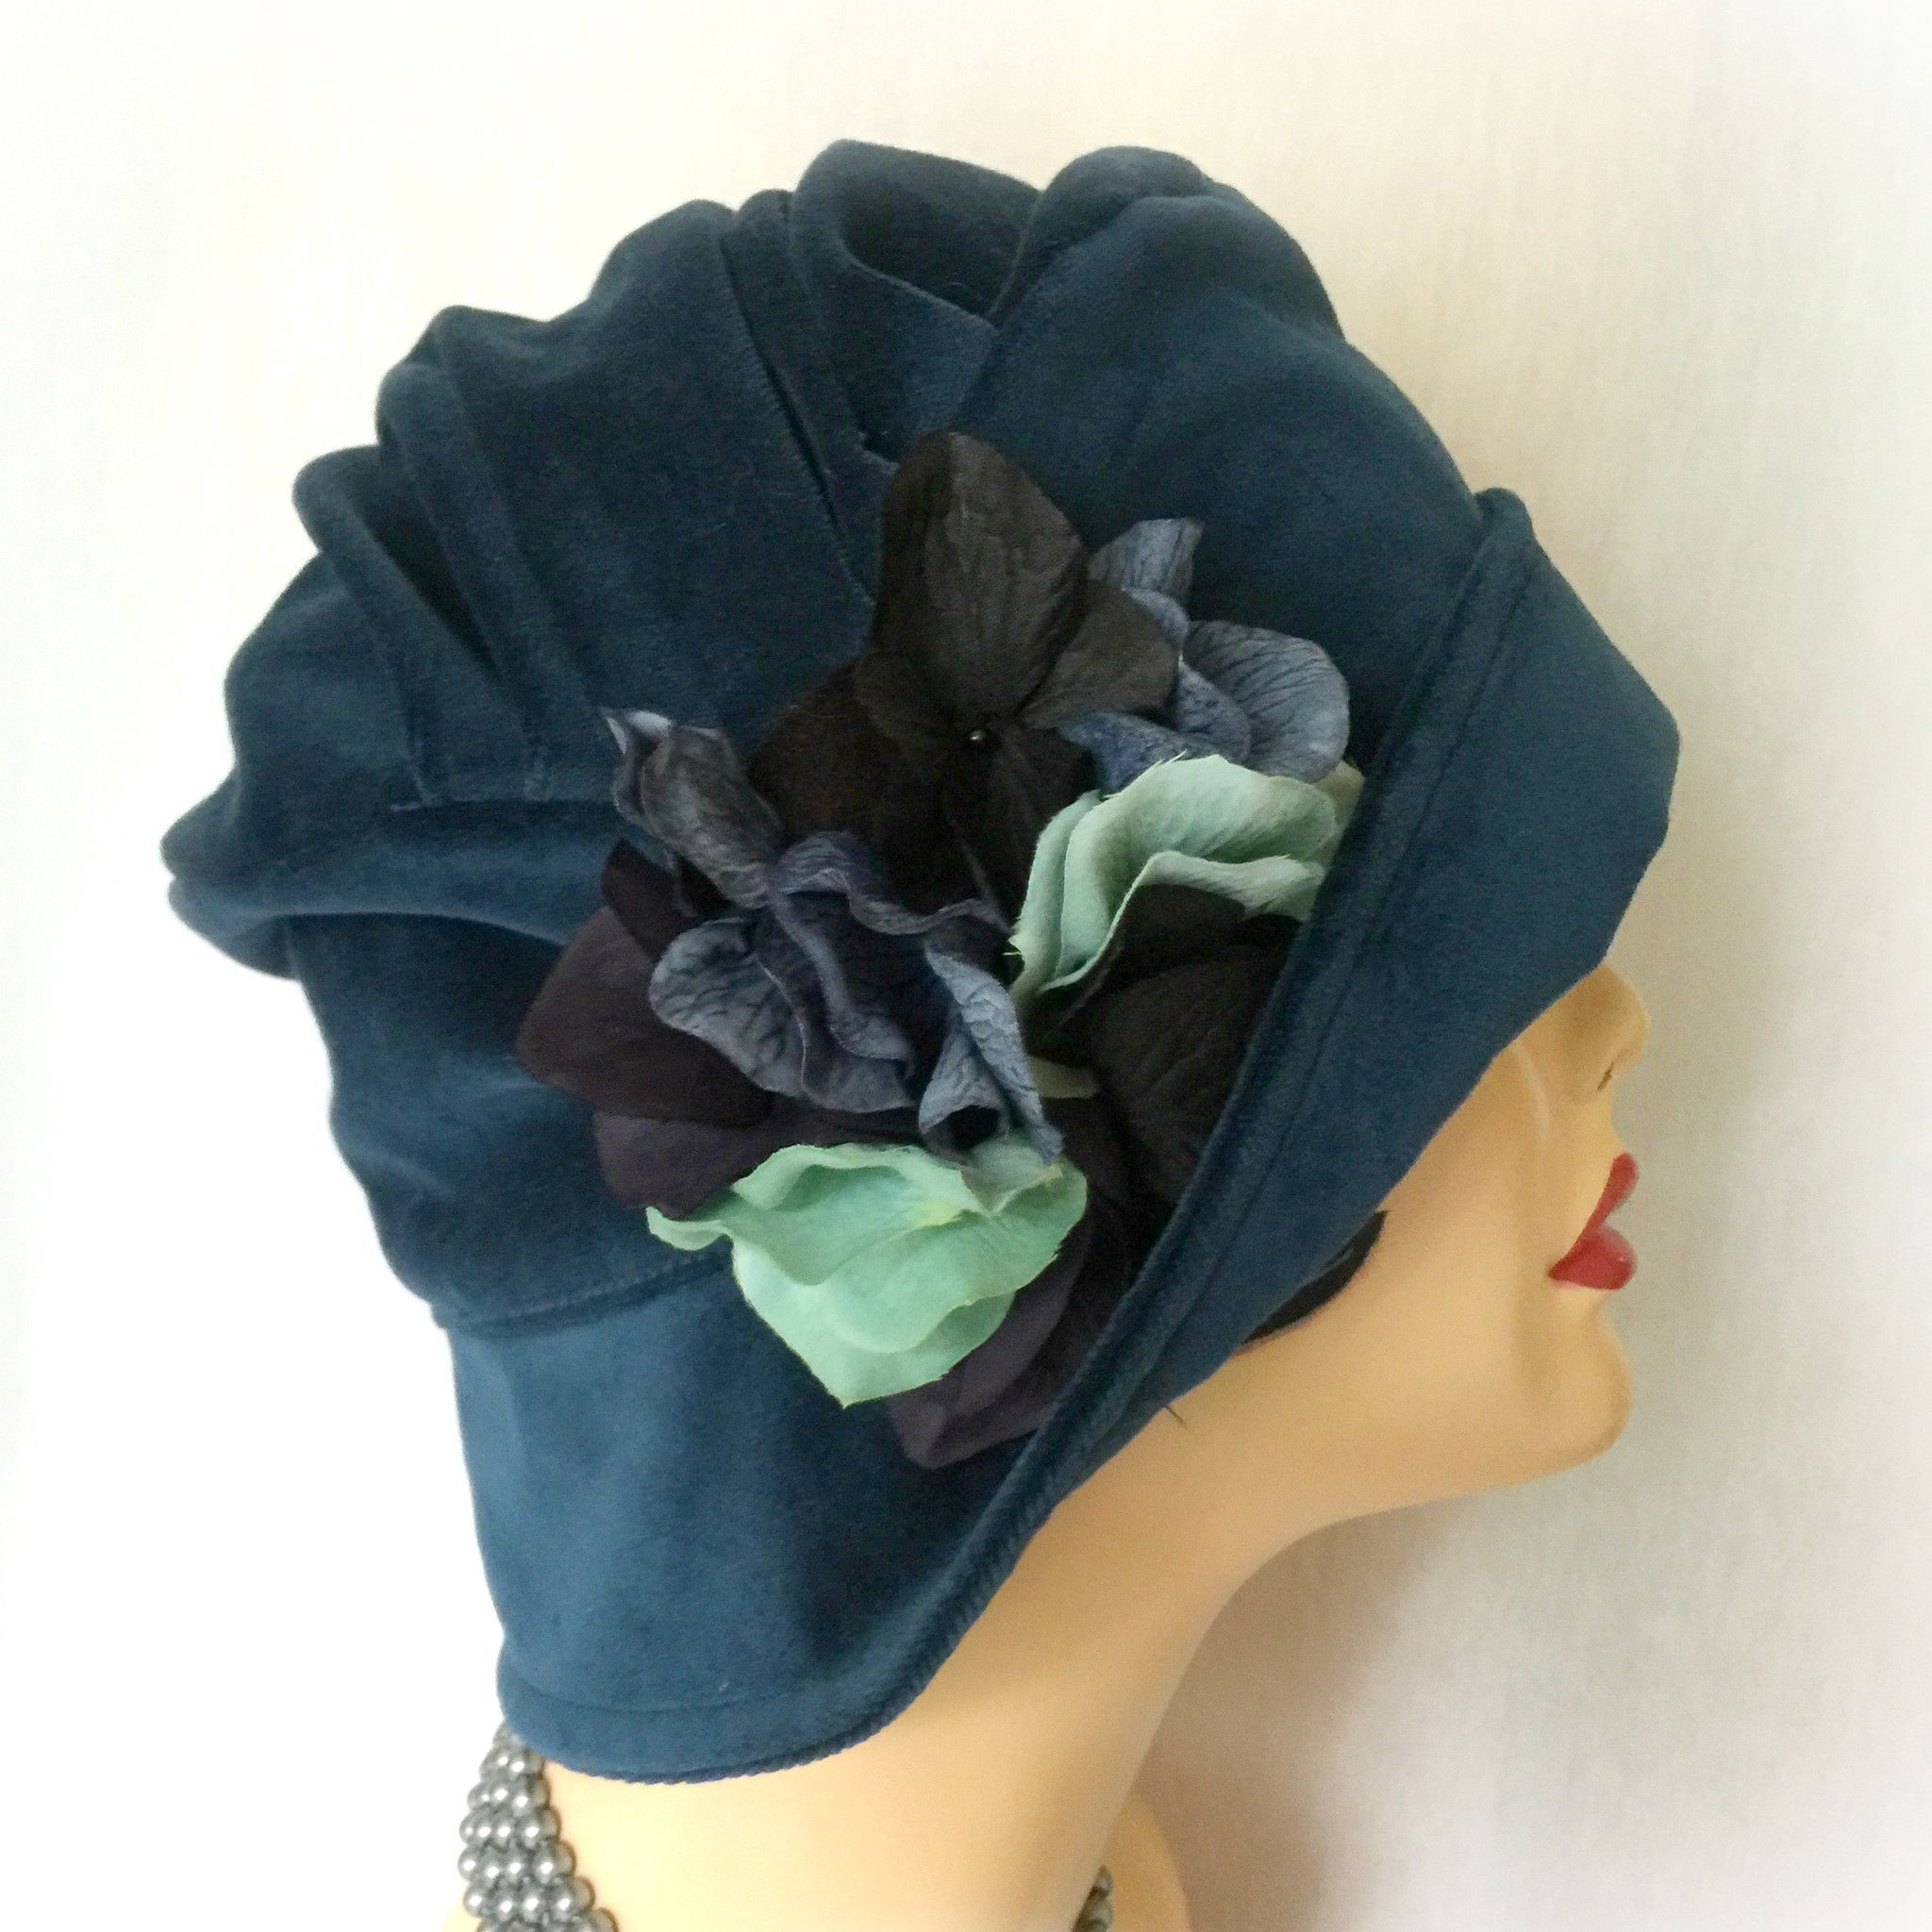 a2247bcd4a0a3 Downton Abbey Hat -The Alice Cloche - Blue Velvet Cloche - Women s Stylish  Cloche - Hydrangea Flower Pin - Fall Hat - Winter Hat - Spring Hat -  Handmade in ...